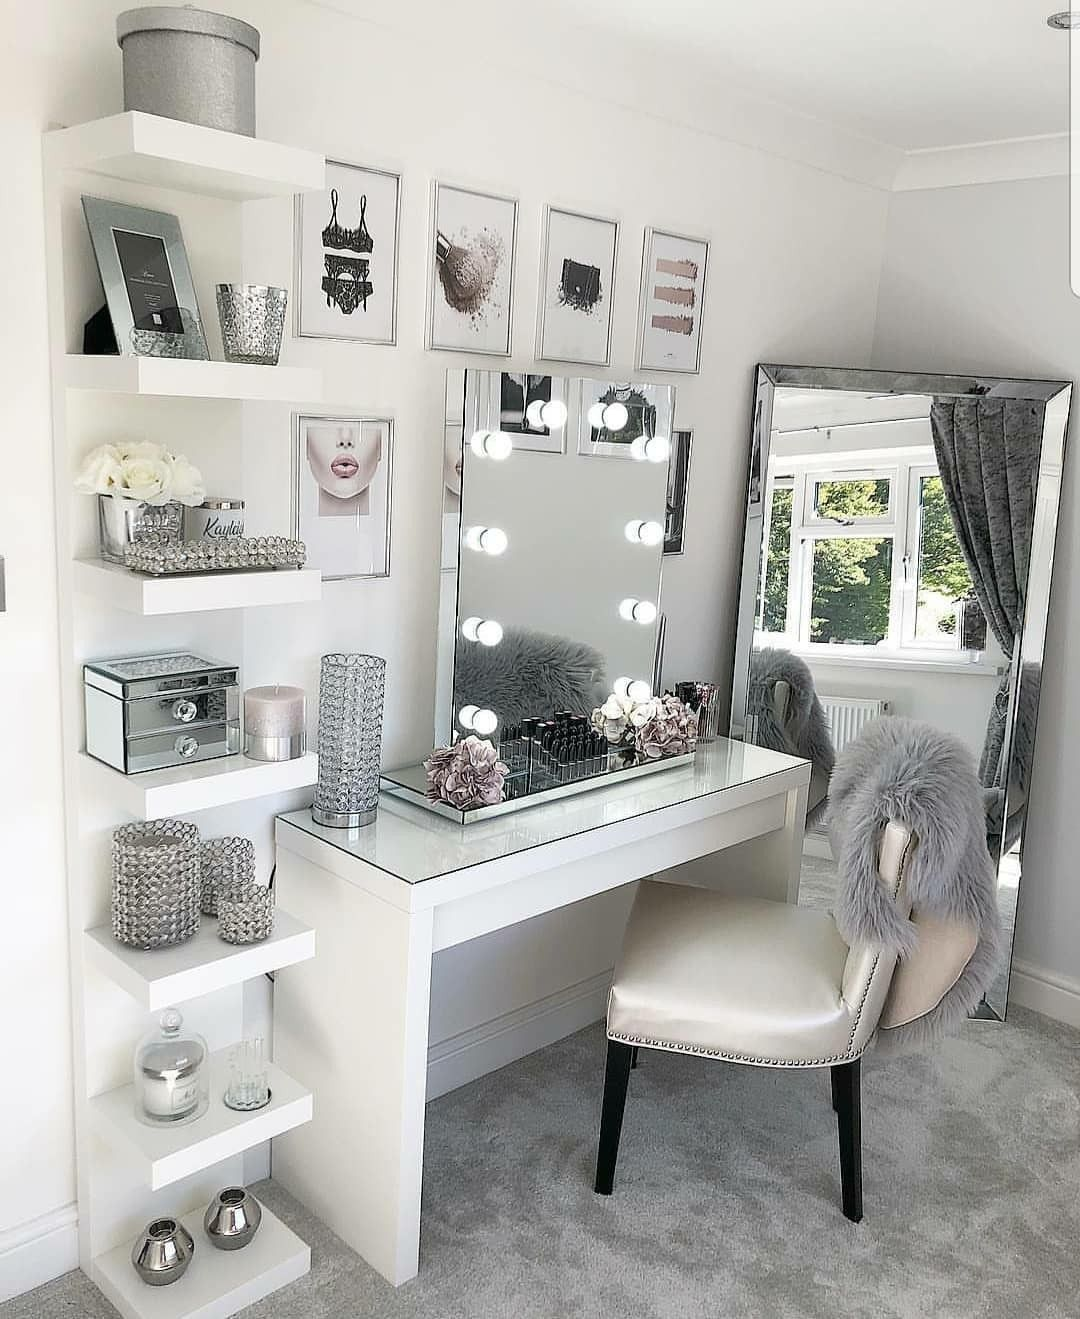 Glam beauty room vanity decor penteadeira | Home decor in ...